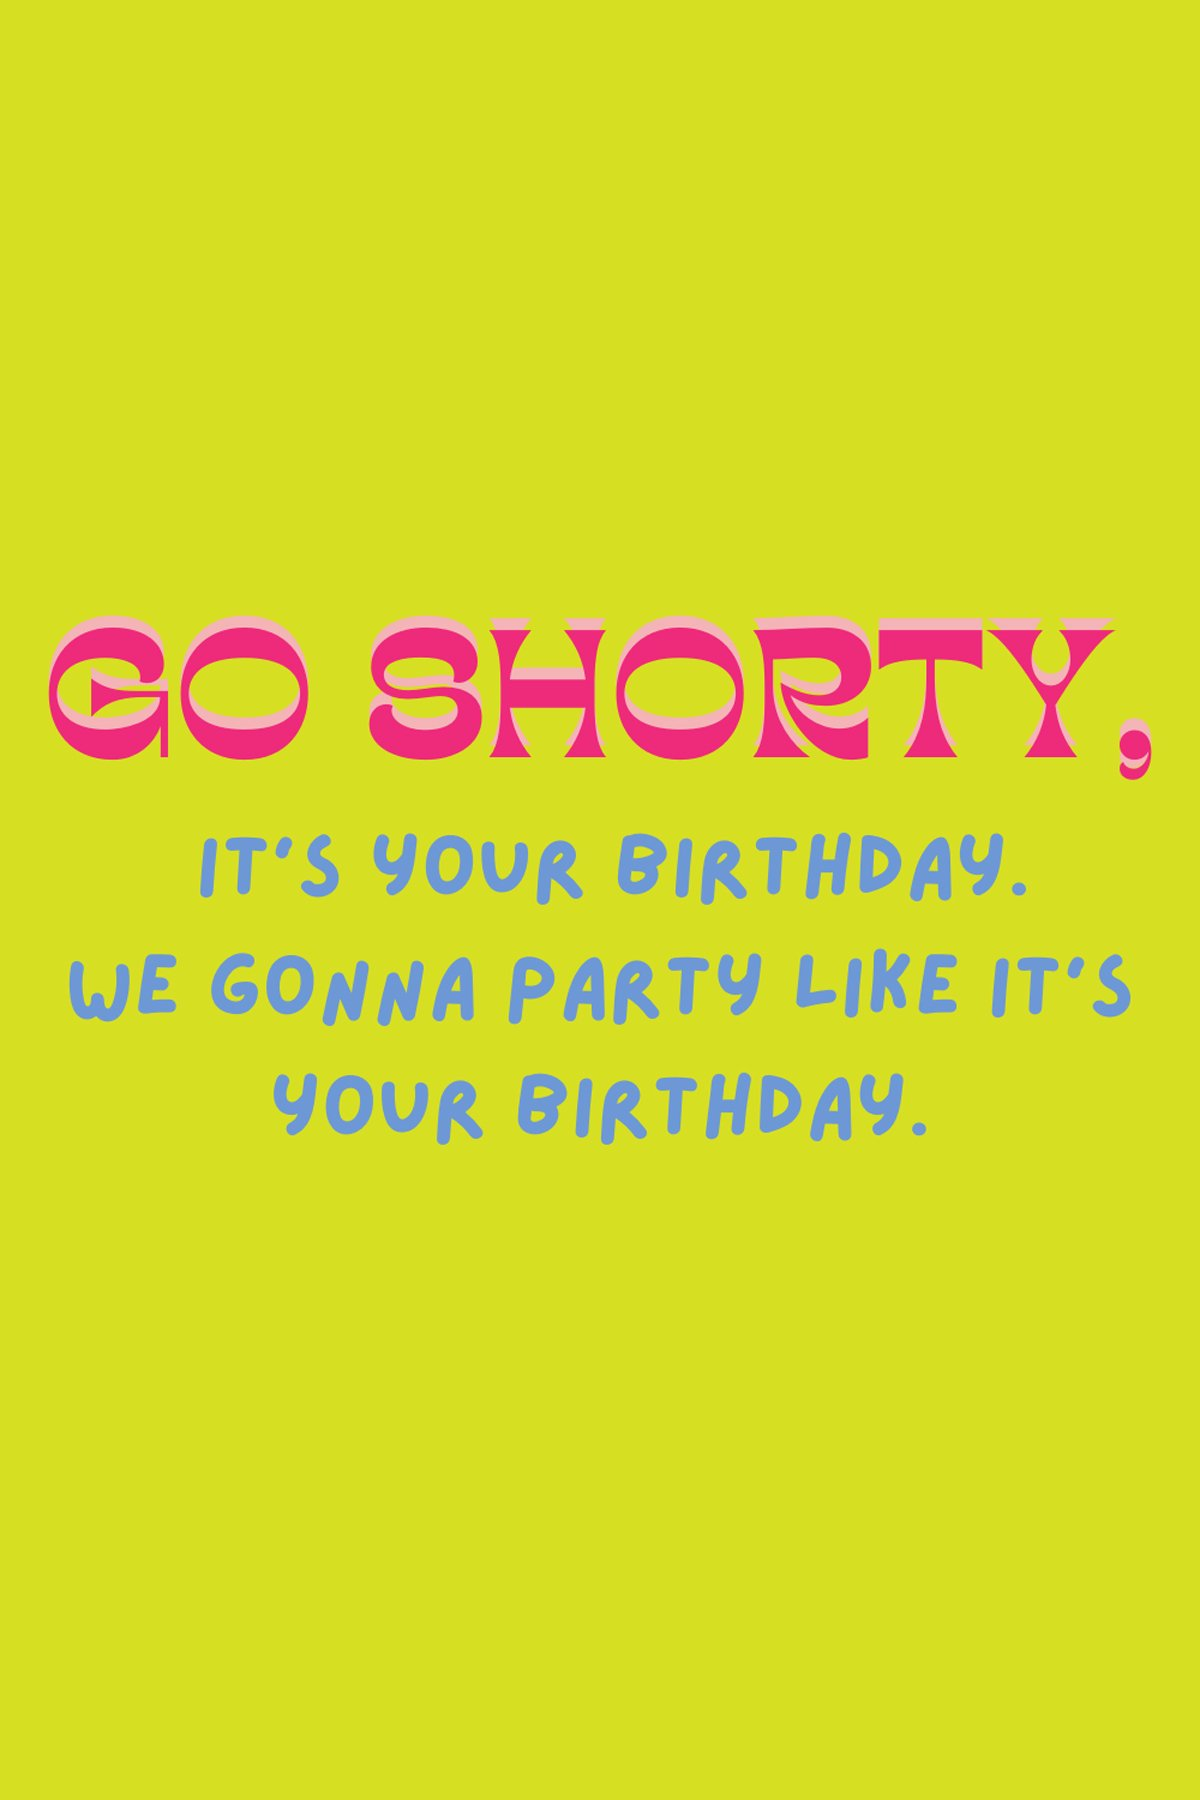 Funny Quotes for birthdays